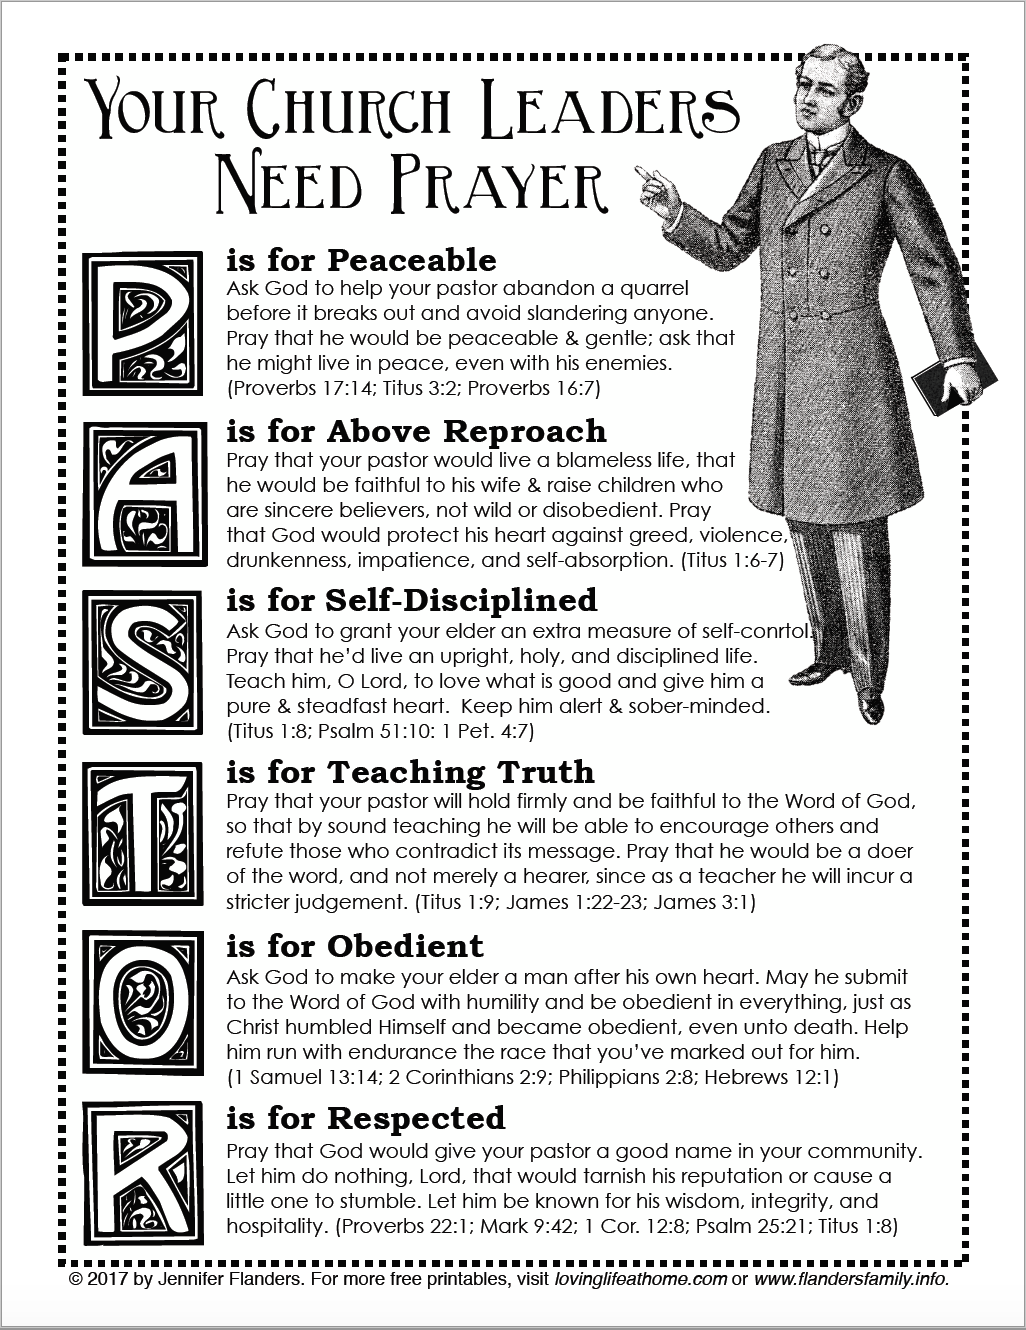 PRAY FOR YOUR PASTOR: free printable prayer guide from lovinglifeathome.com